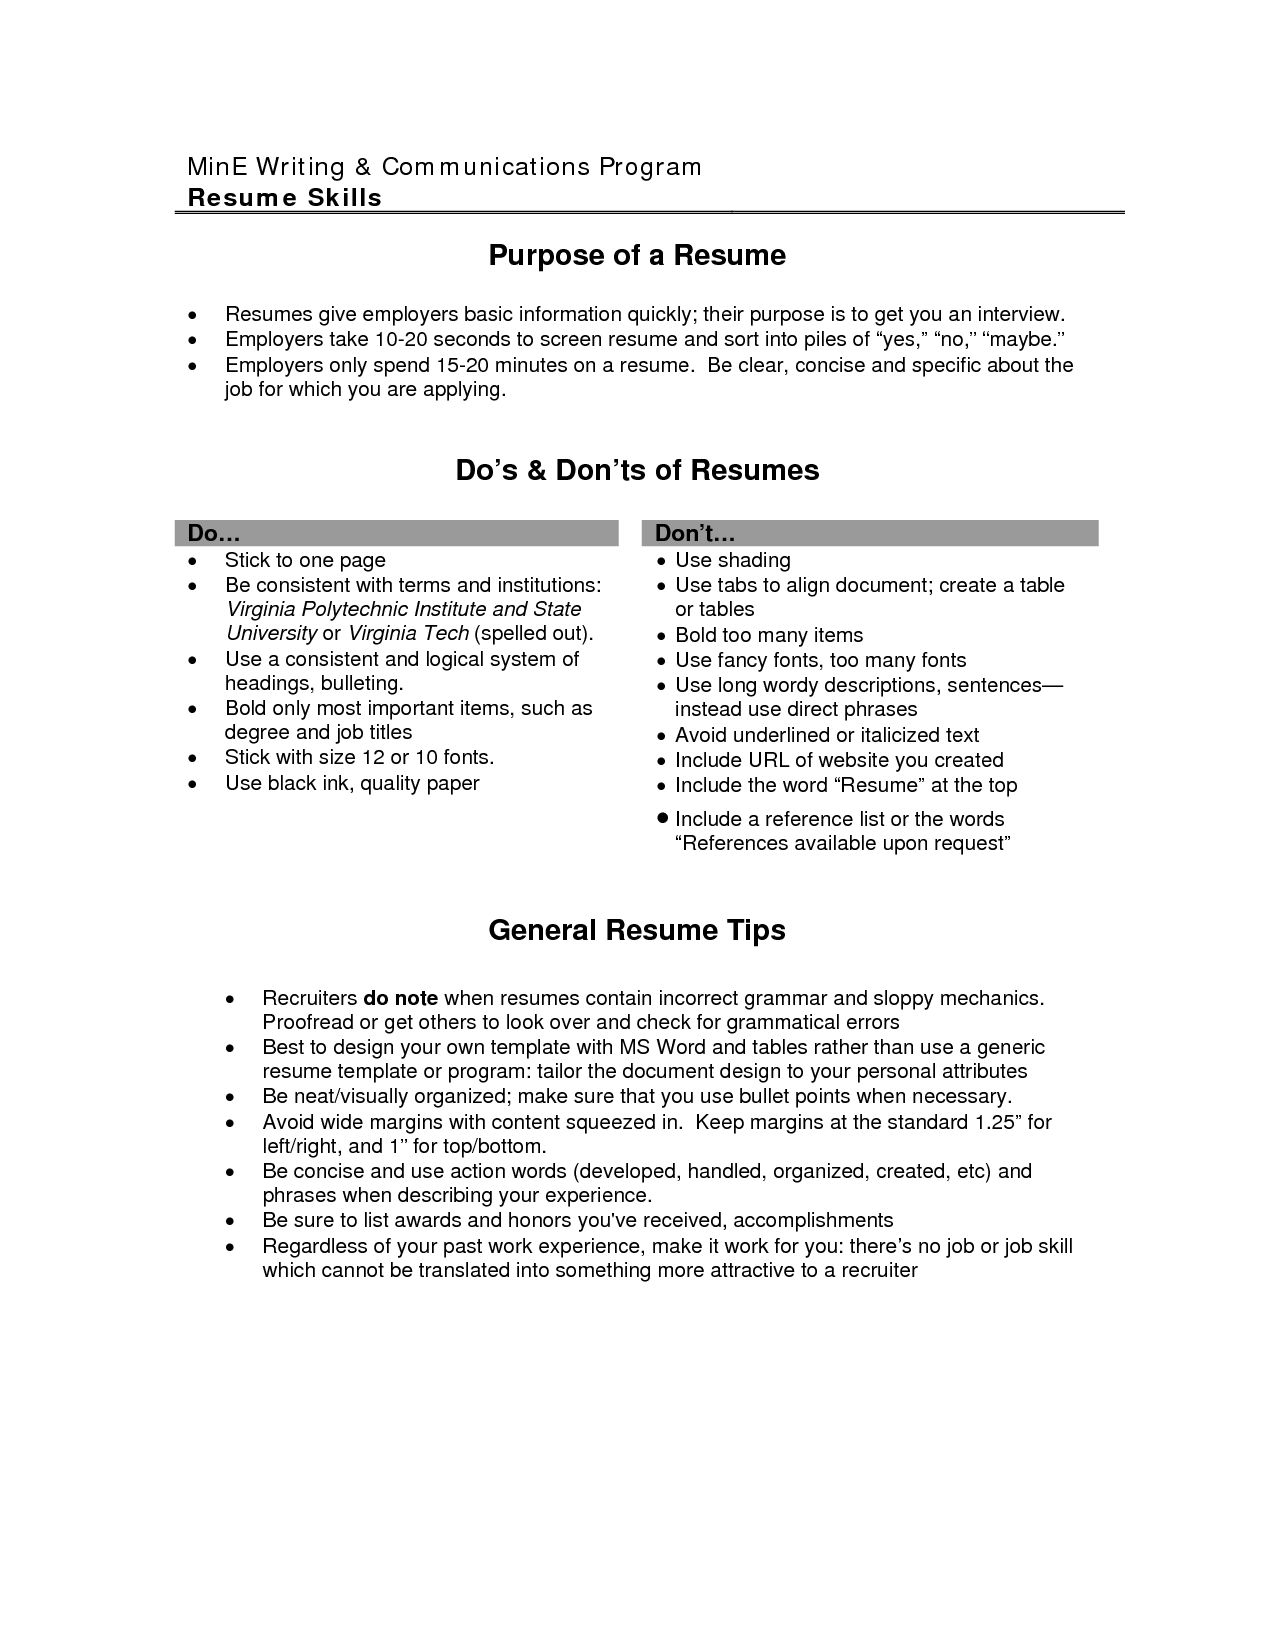 Skills For Job Resume Top Resume Skills Entry Level Template The Create Your Building